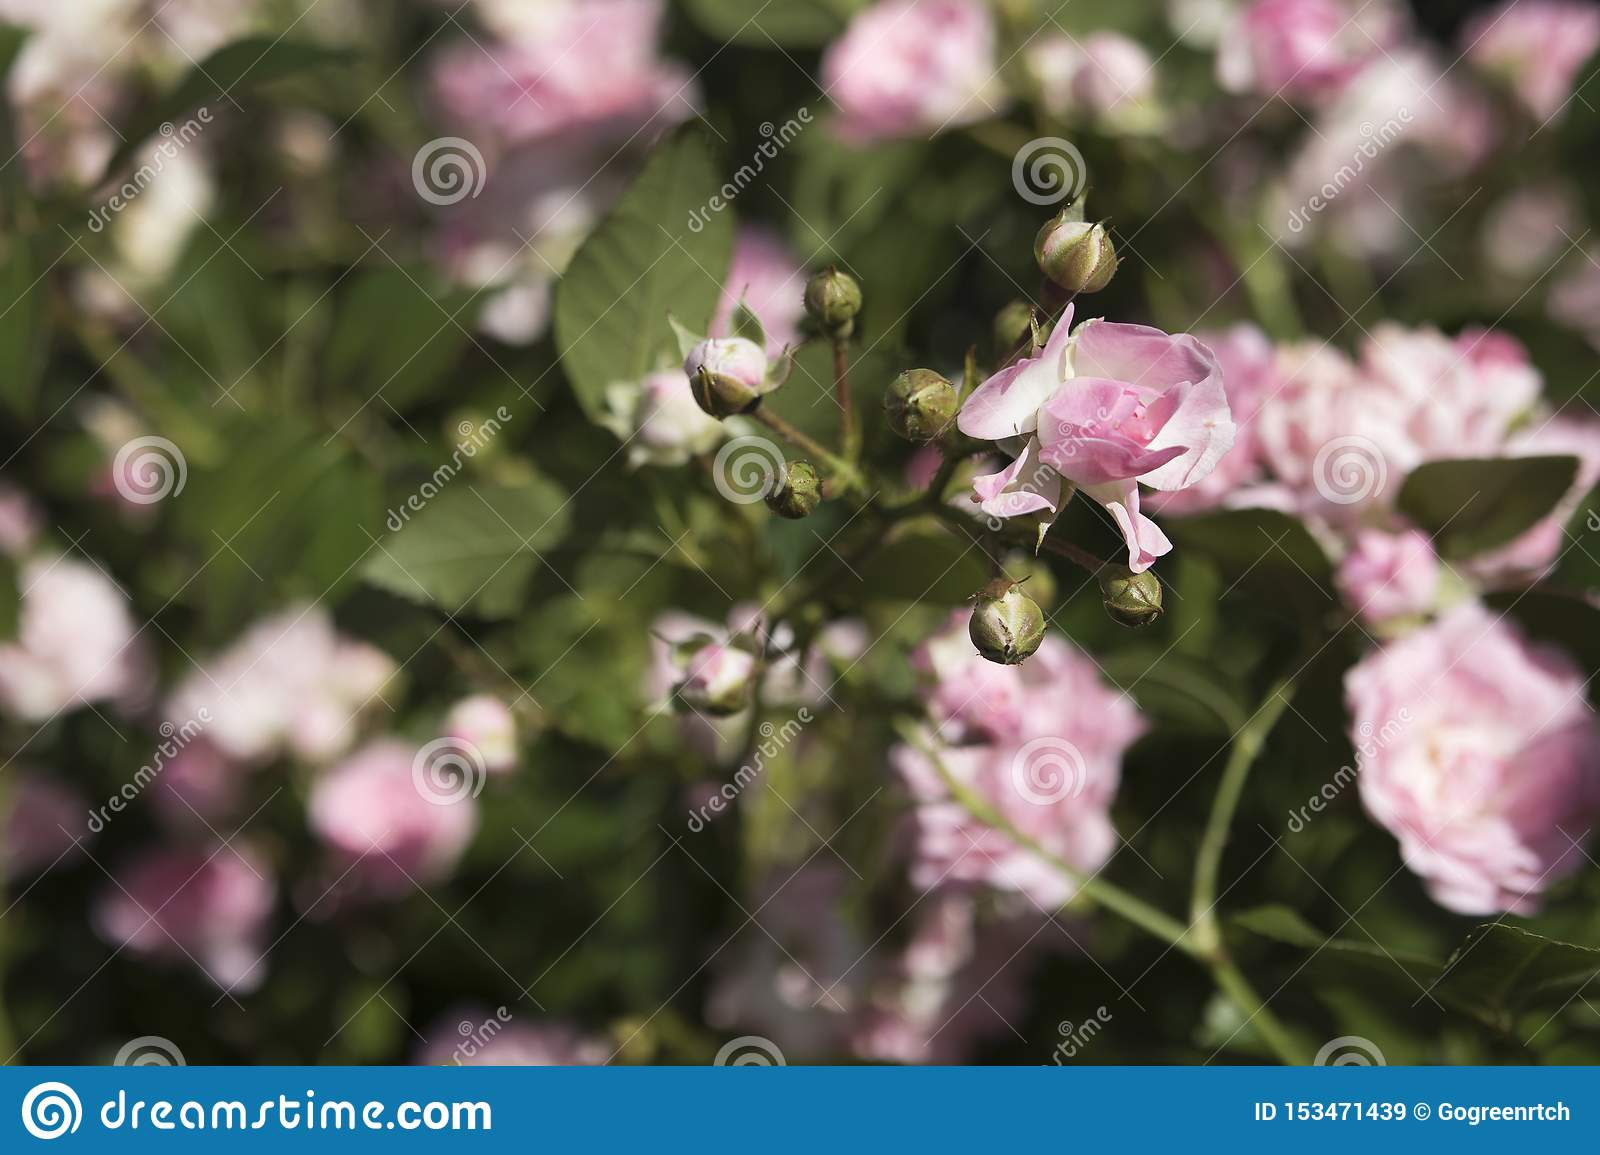 Young shoots of dwarf pink rose in the garden in summer with a blurred background